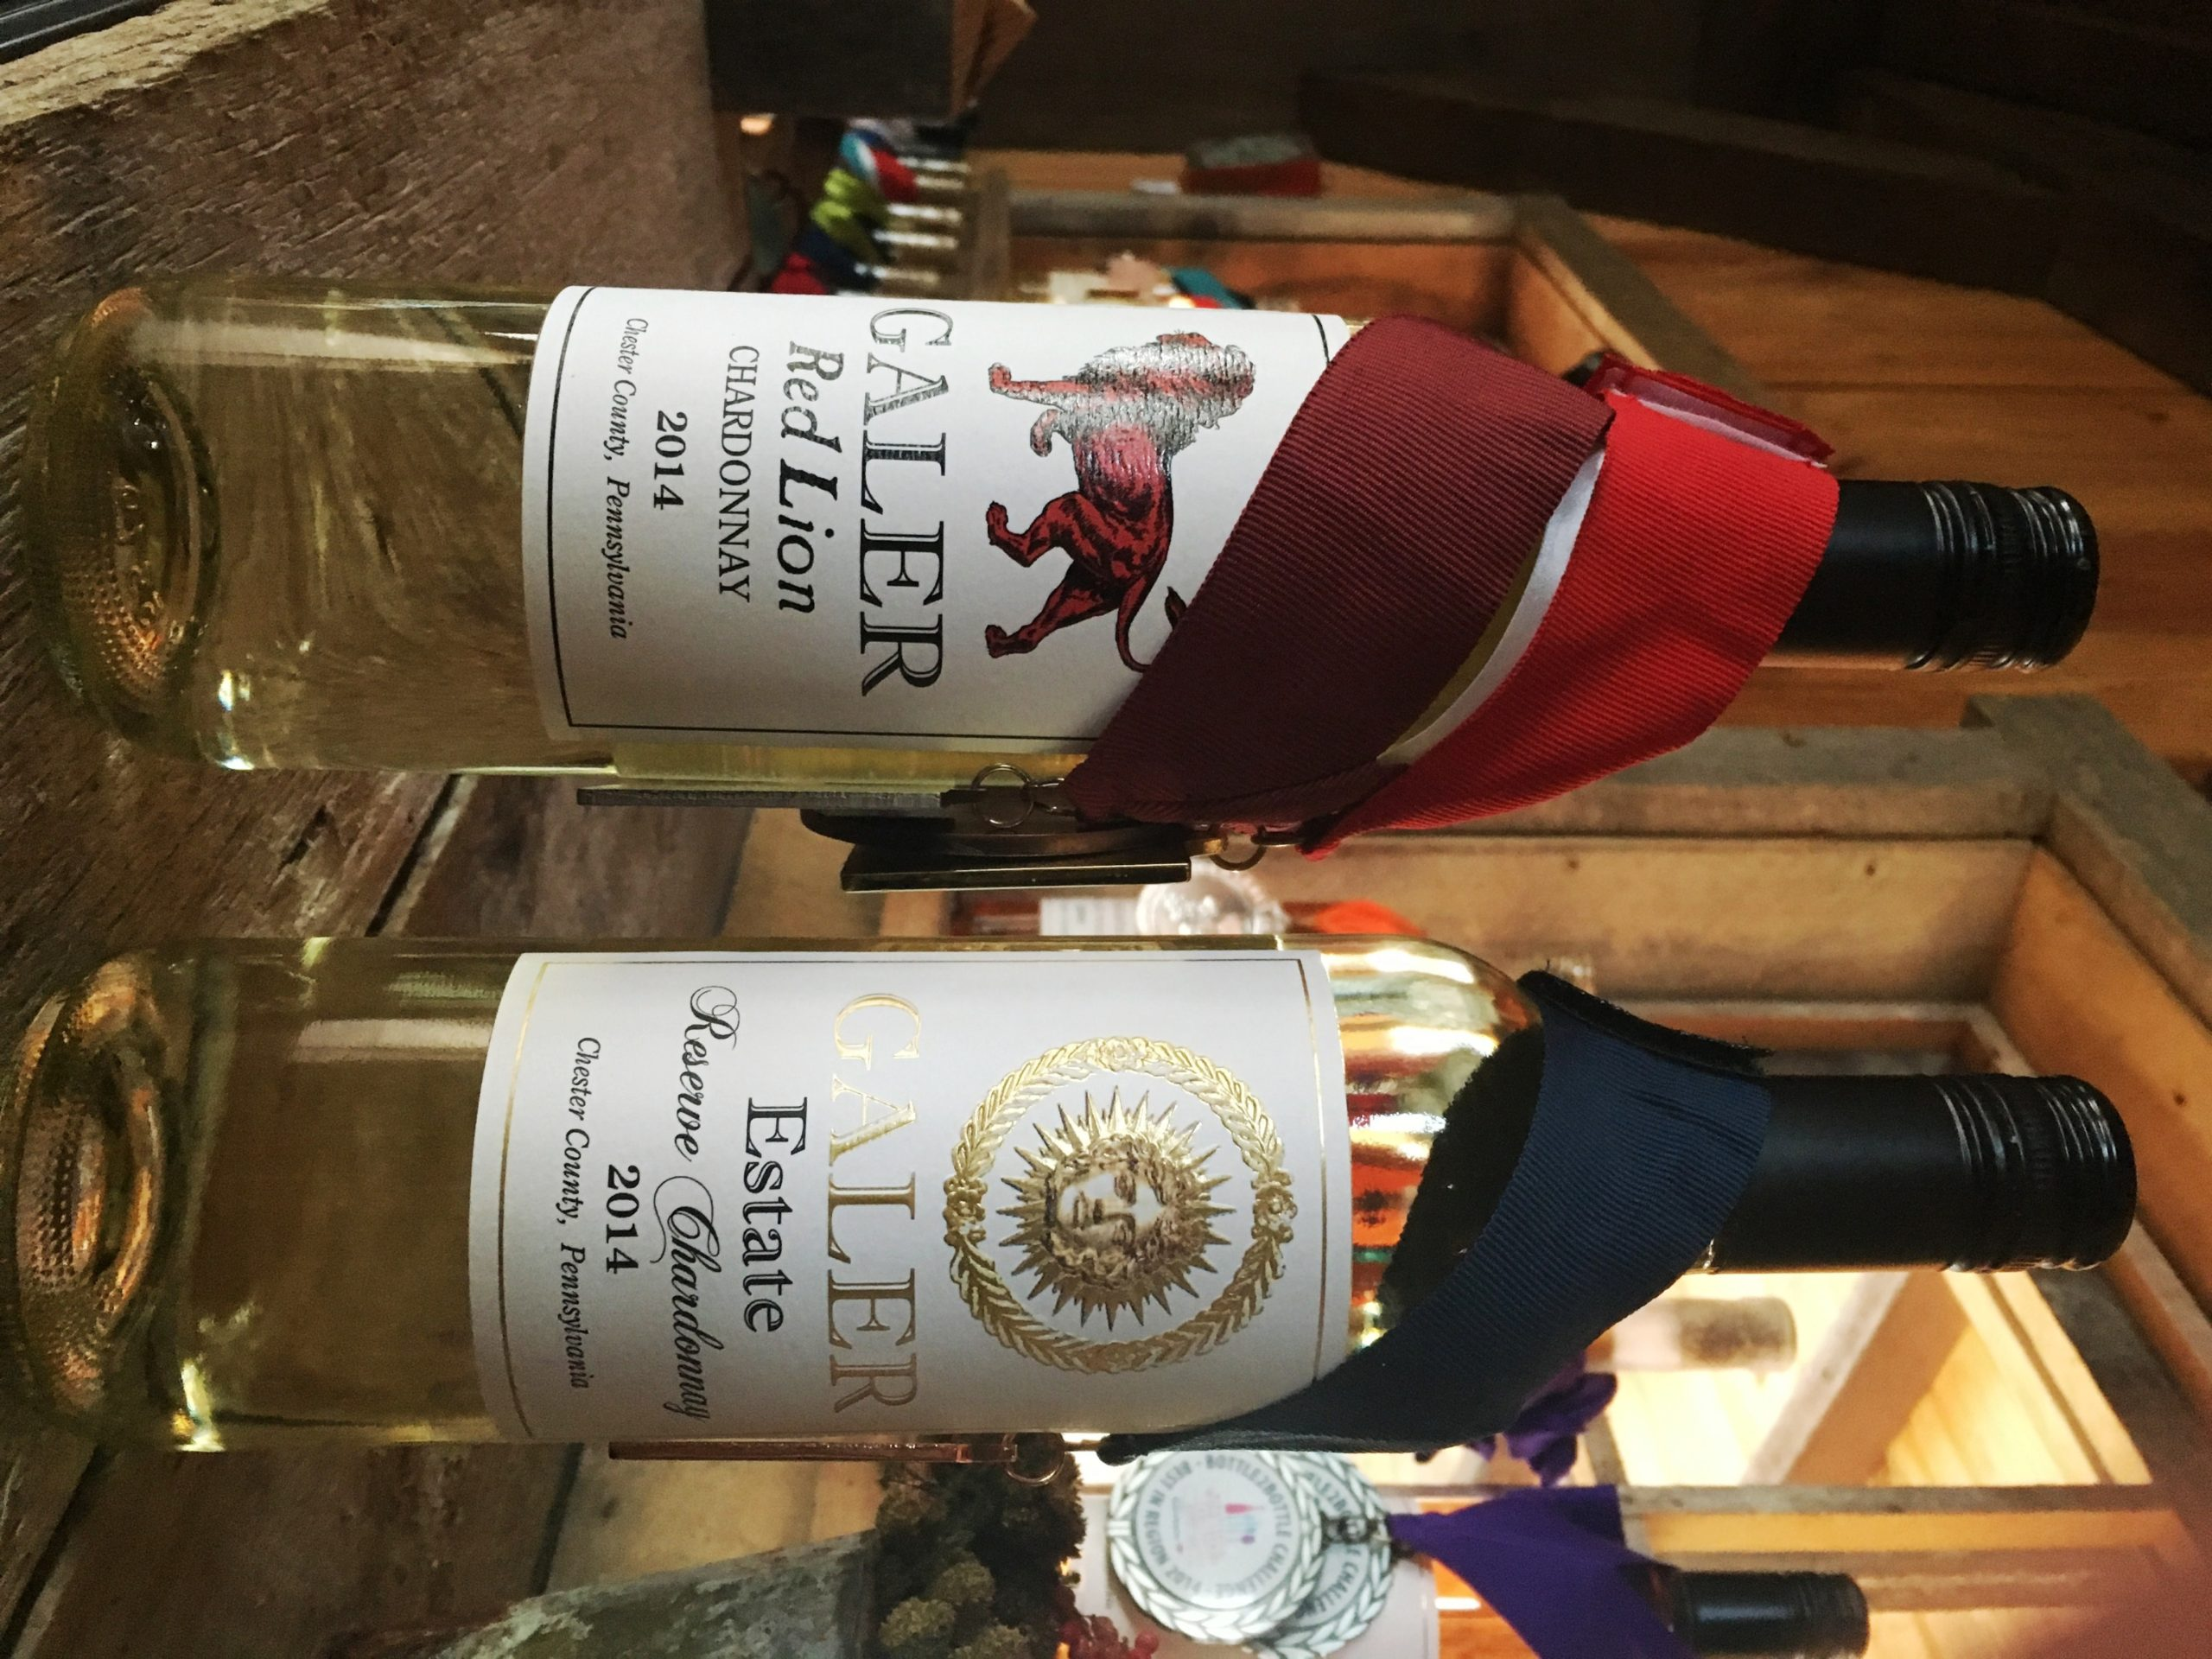 Galer Estate Wines Win Two Medals at the San Francisco Chronicle Wine Competition